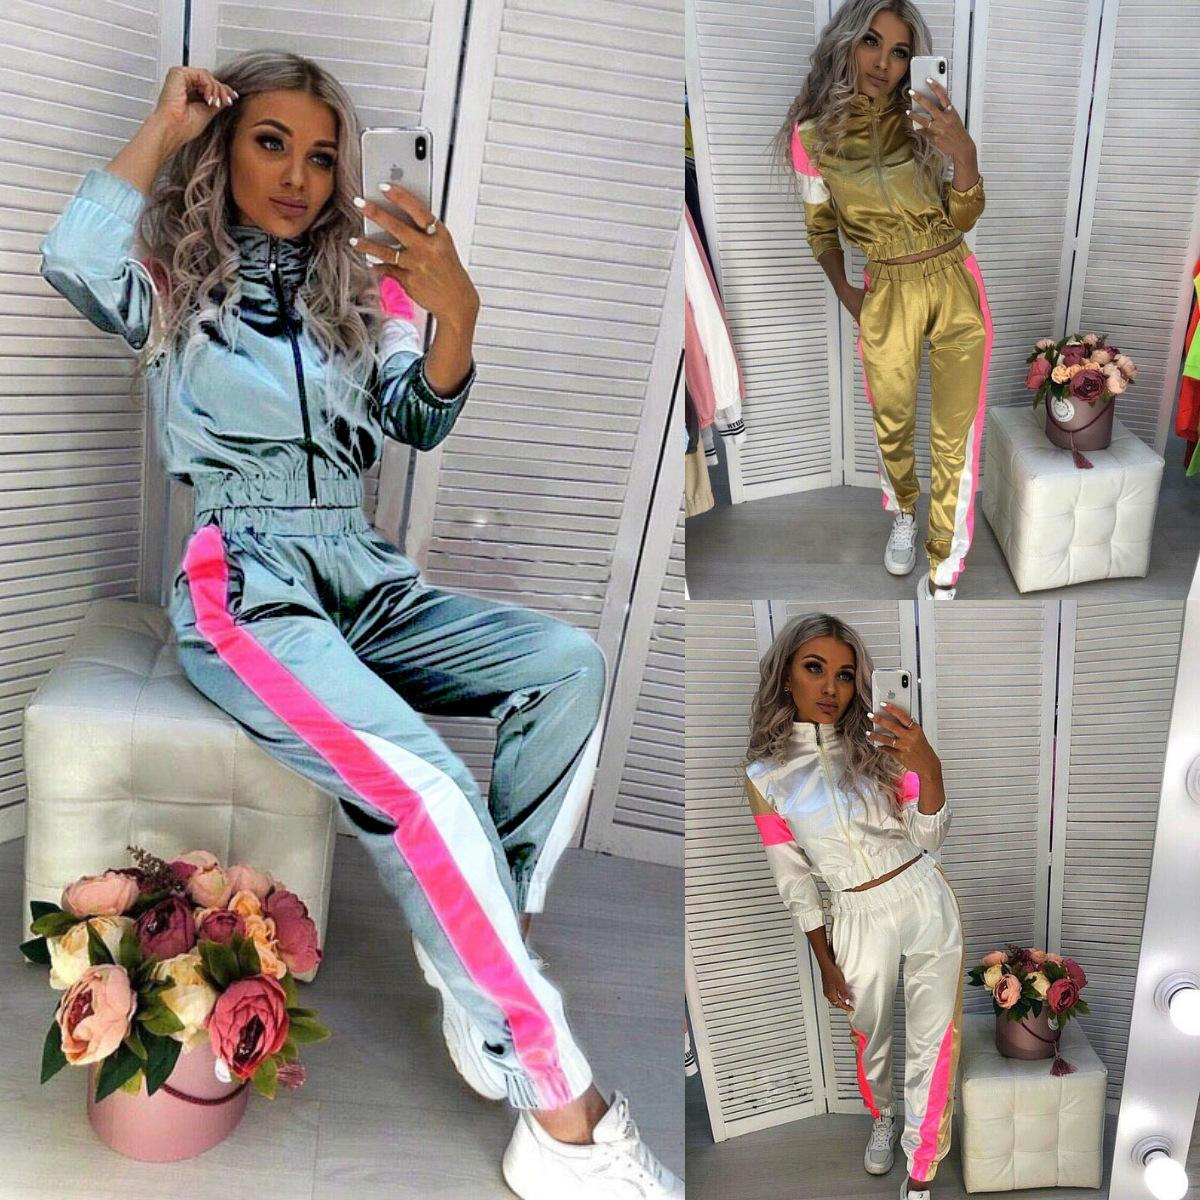 E-Baihui 2020 European and American New Women's Clothing Stitching Street Shooting Casual Women's Slim Straight Two-piece Suit N0310